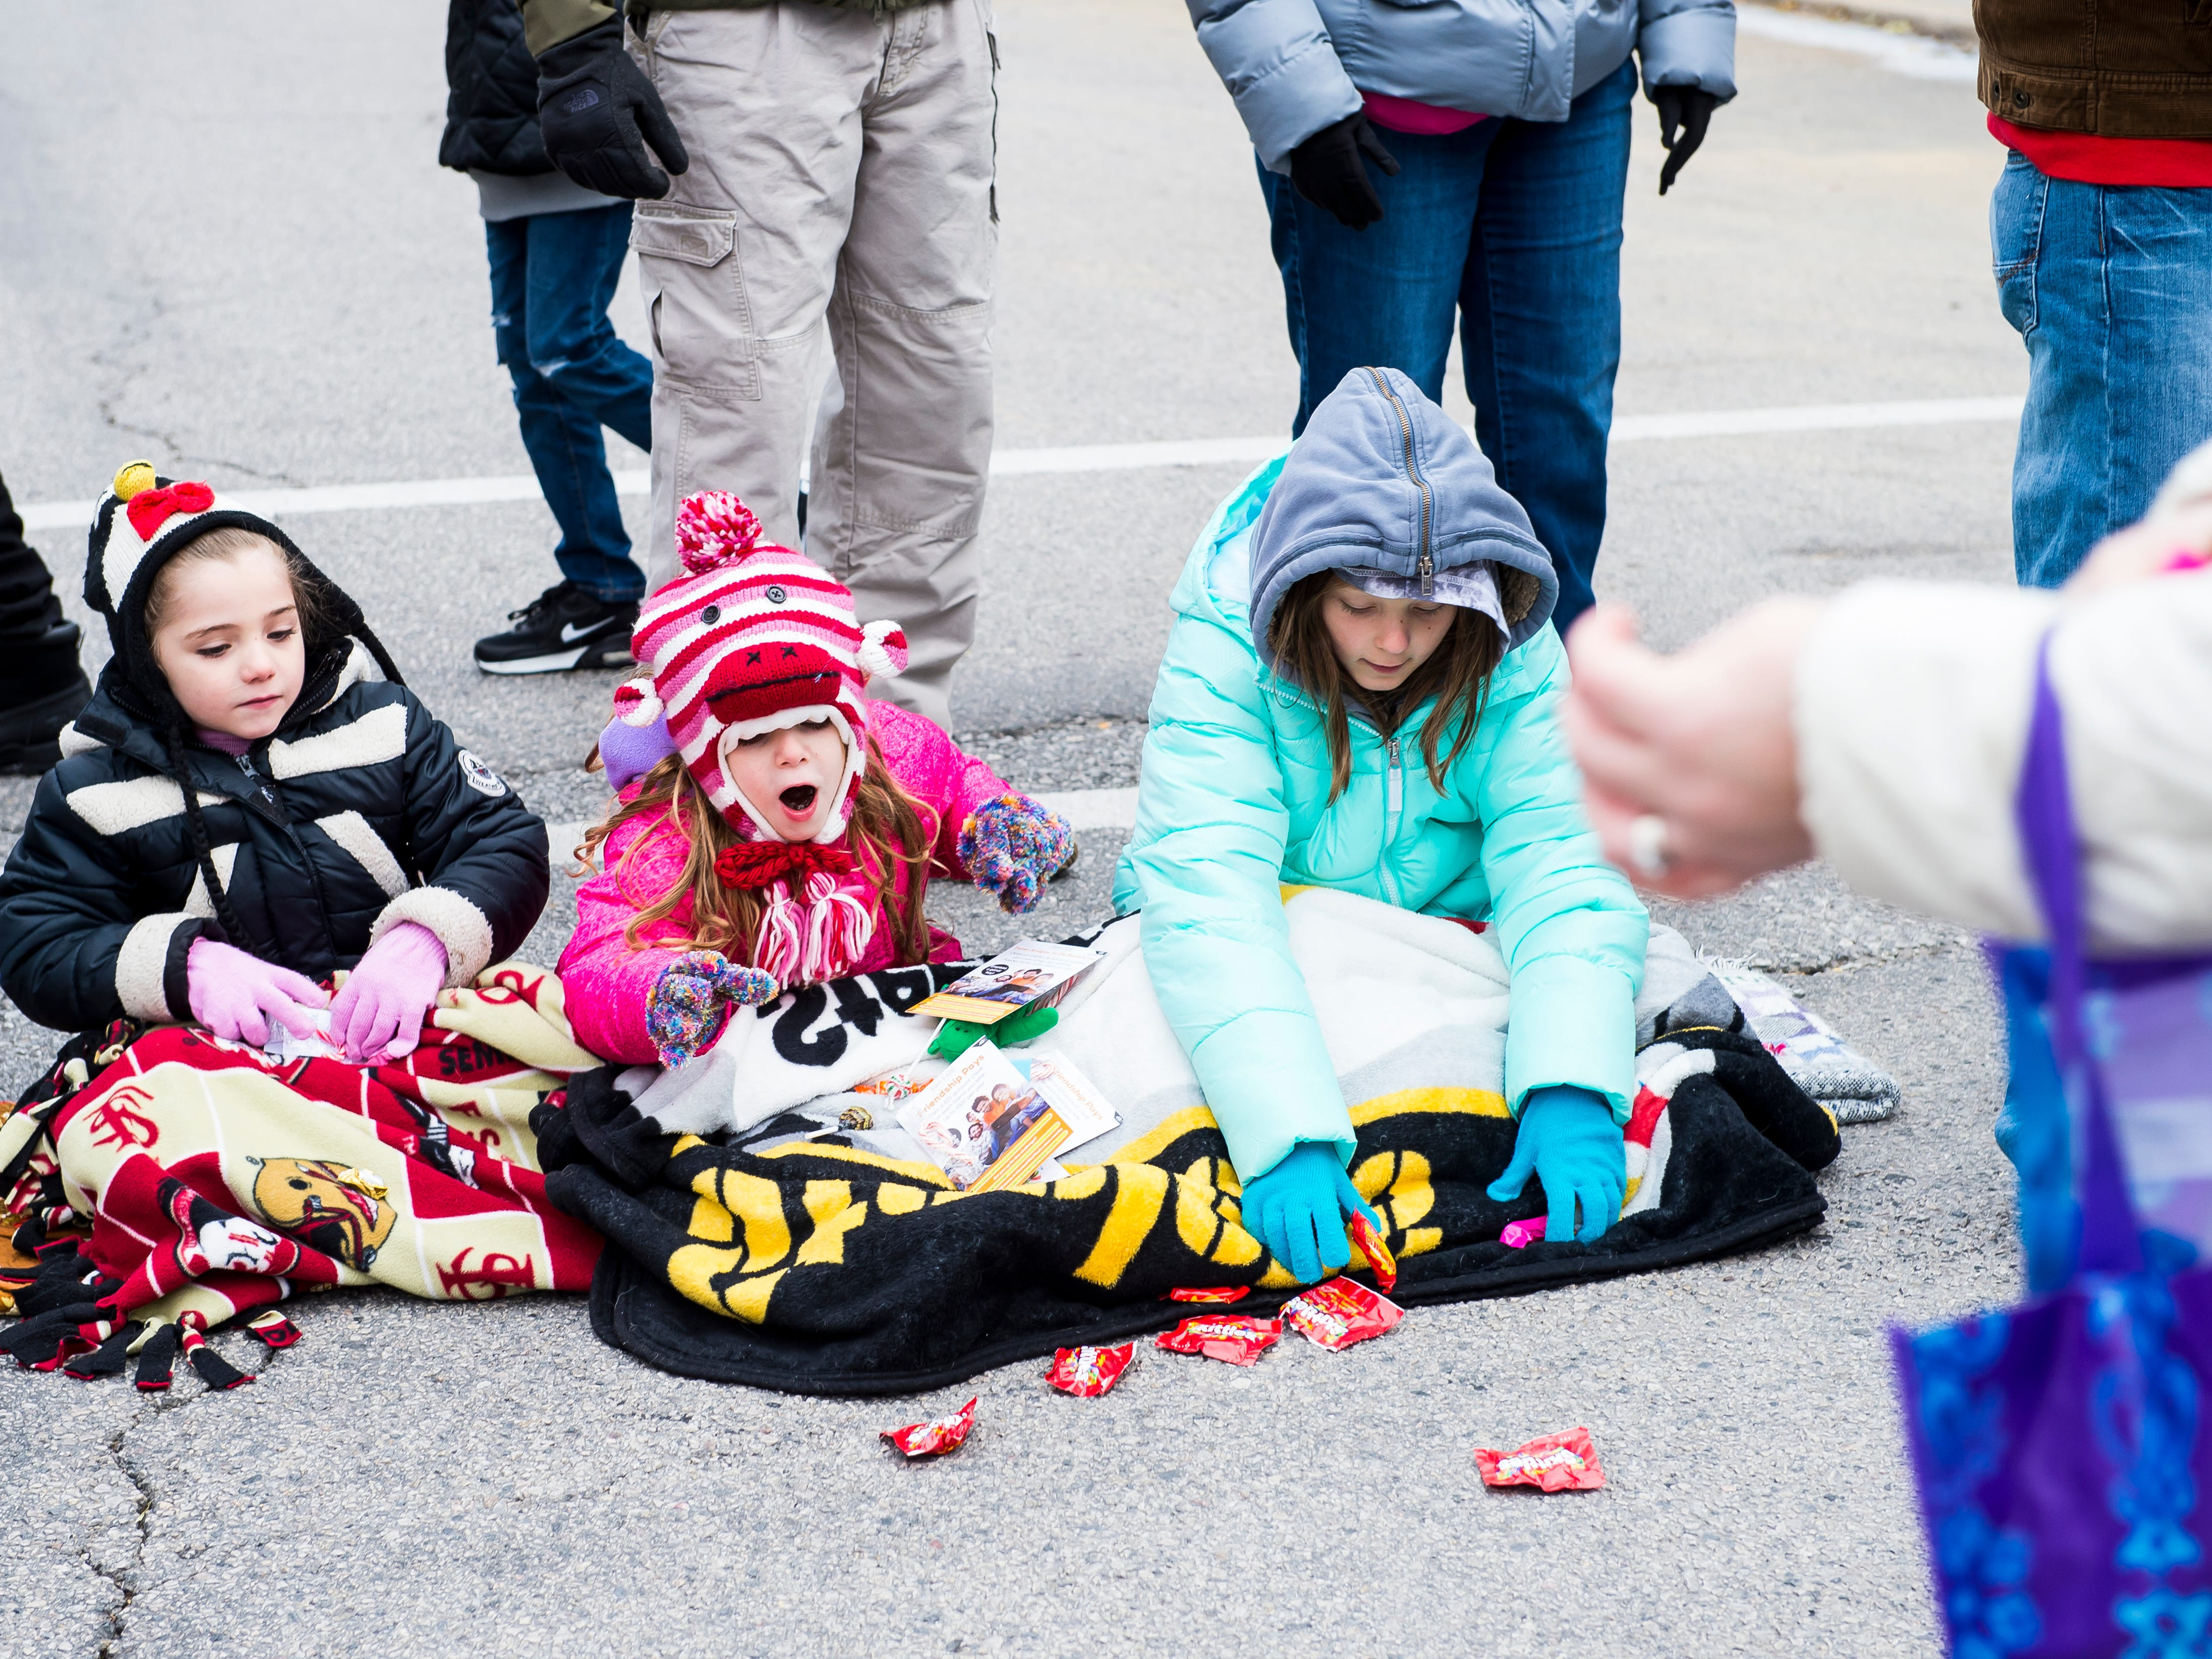 Children collect candy off the ground during the annual Hanover Christmas parade on Friday, November, 23, 2018.